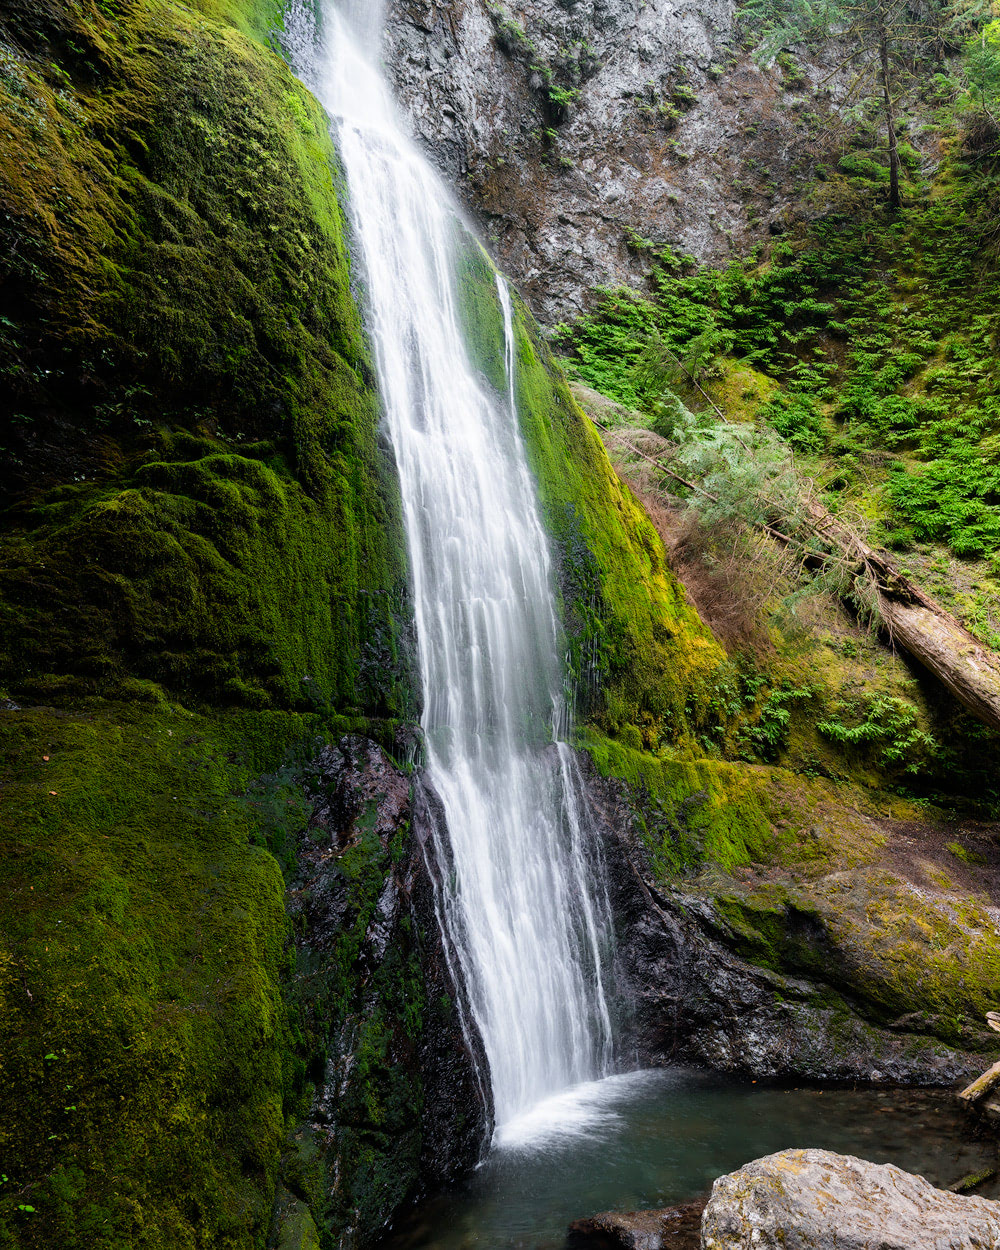 Beginner Friendly Hikes in Washington State - Marymere Falls Trail